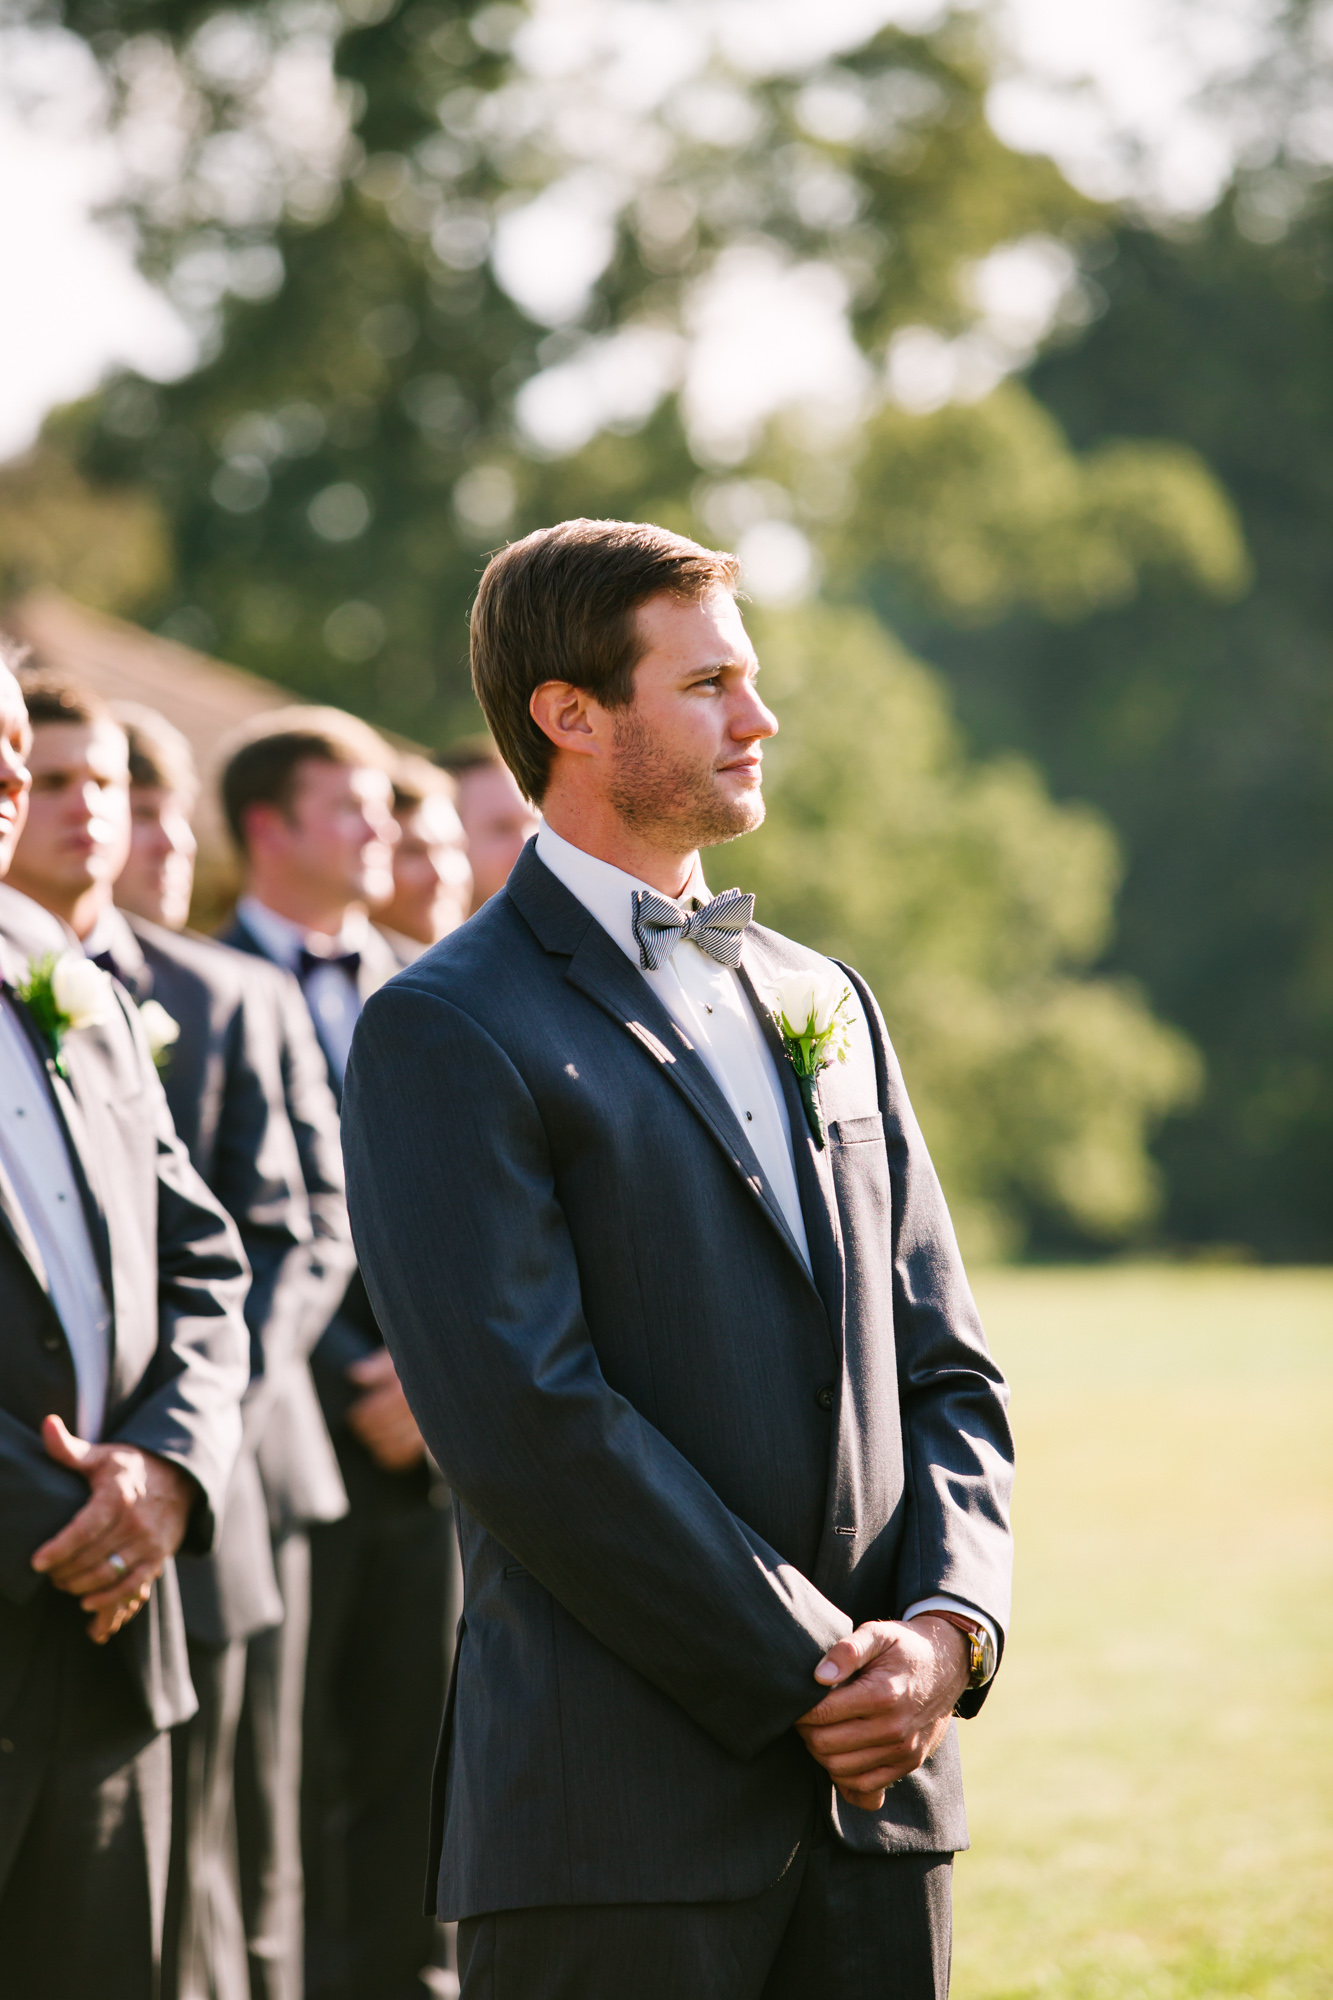 Waynesville, NC Wedding Photography | Wedding Ceremony Grooms Reaction to seeing Bride